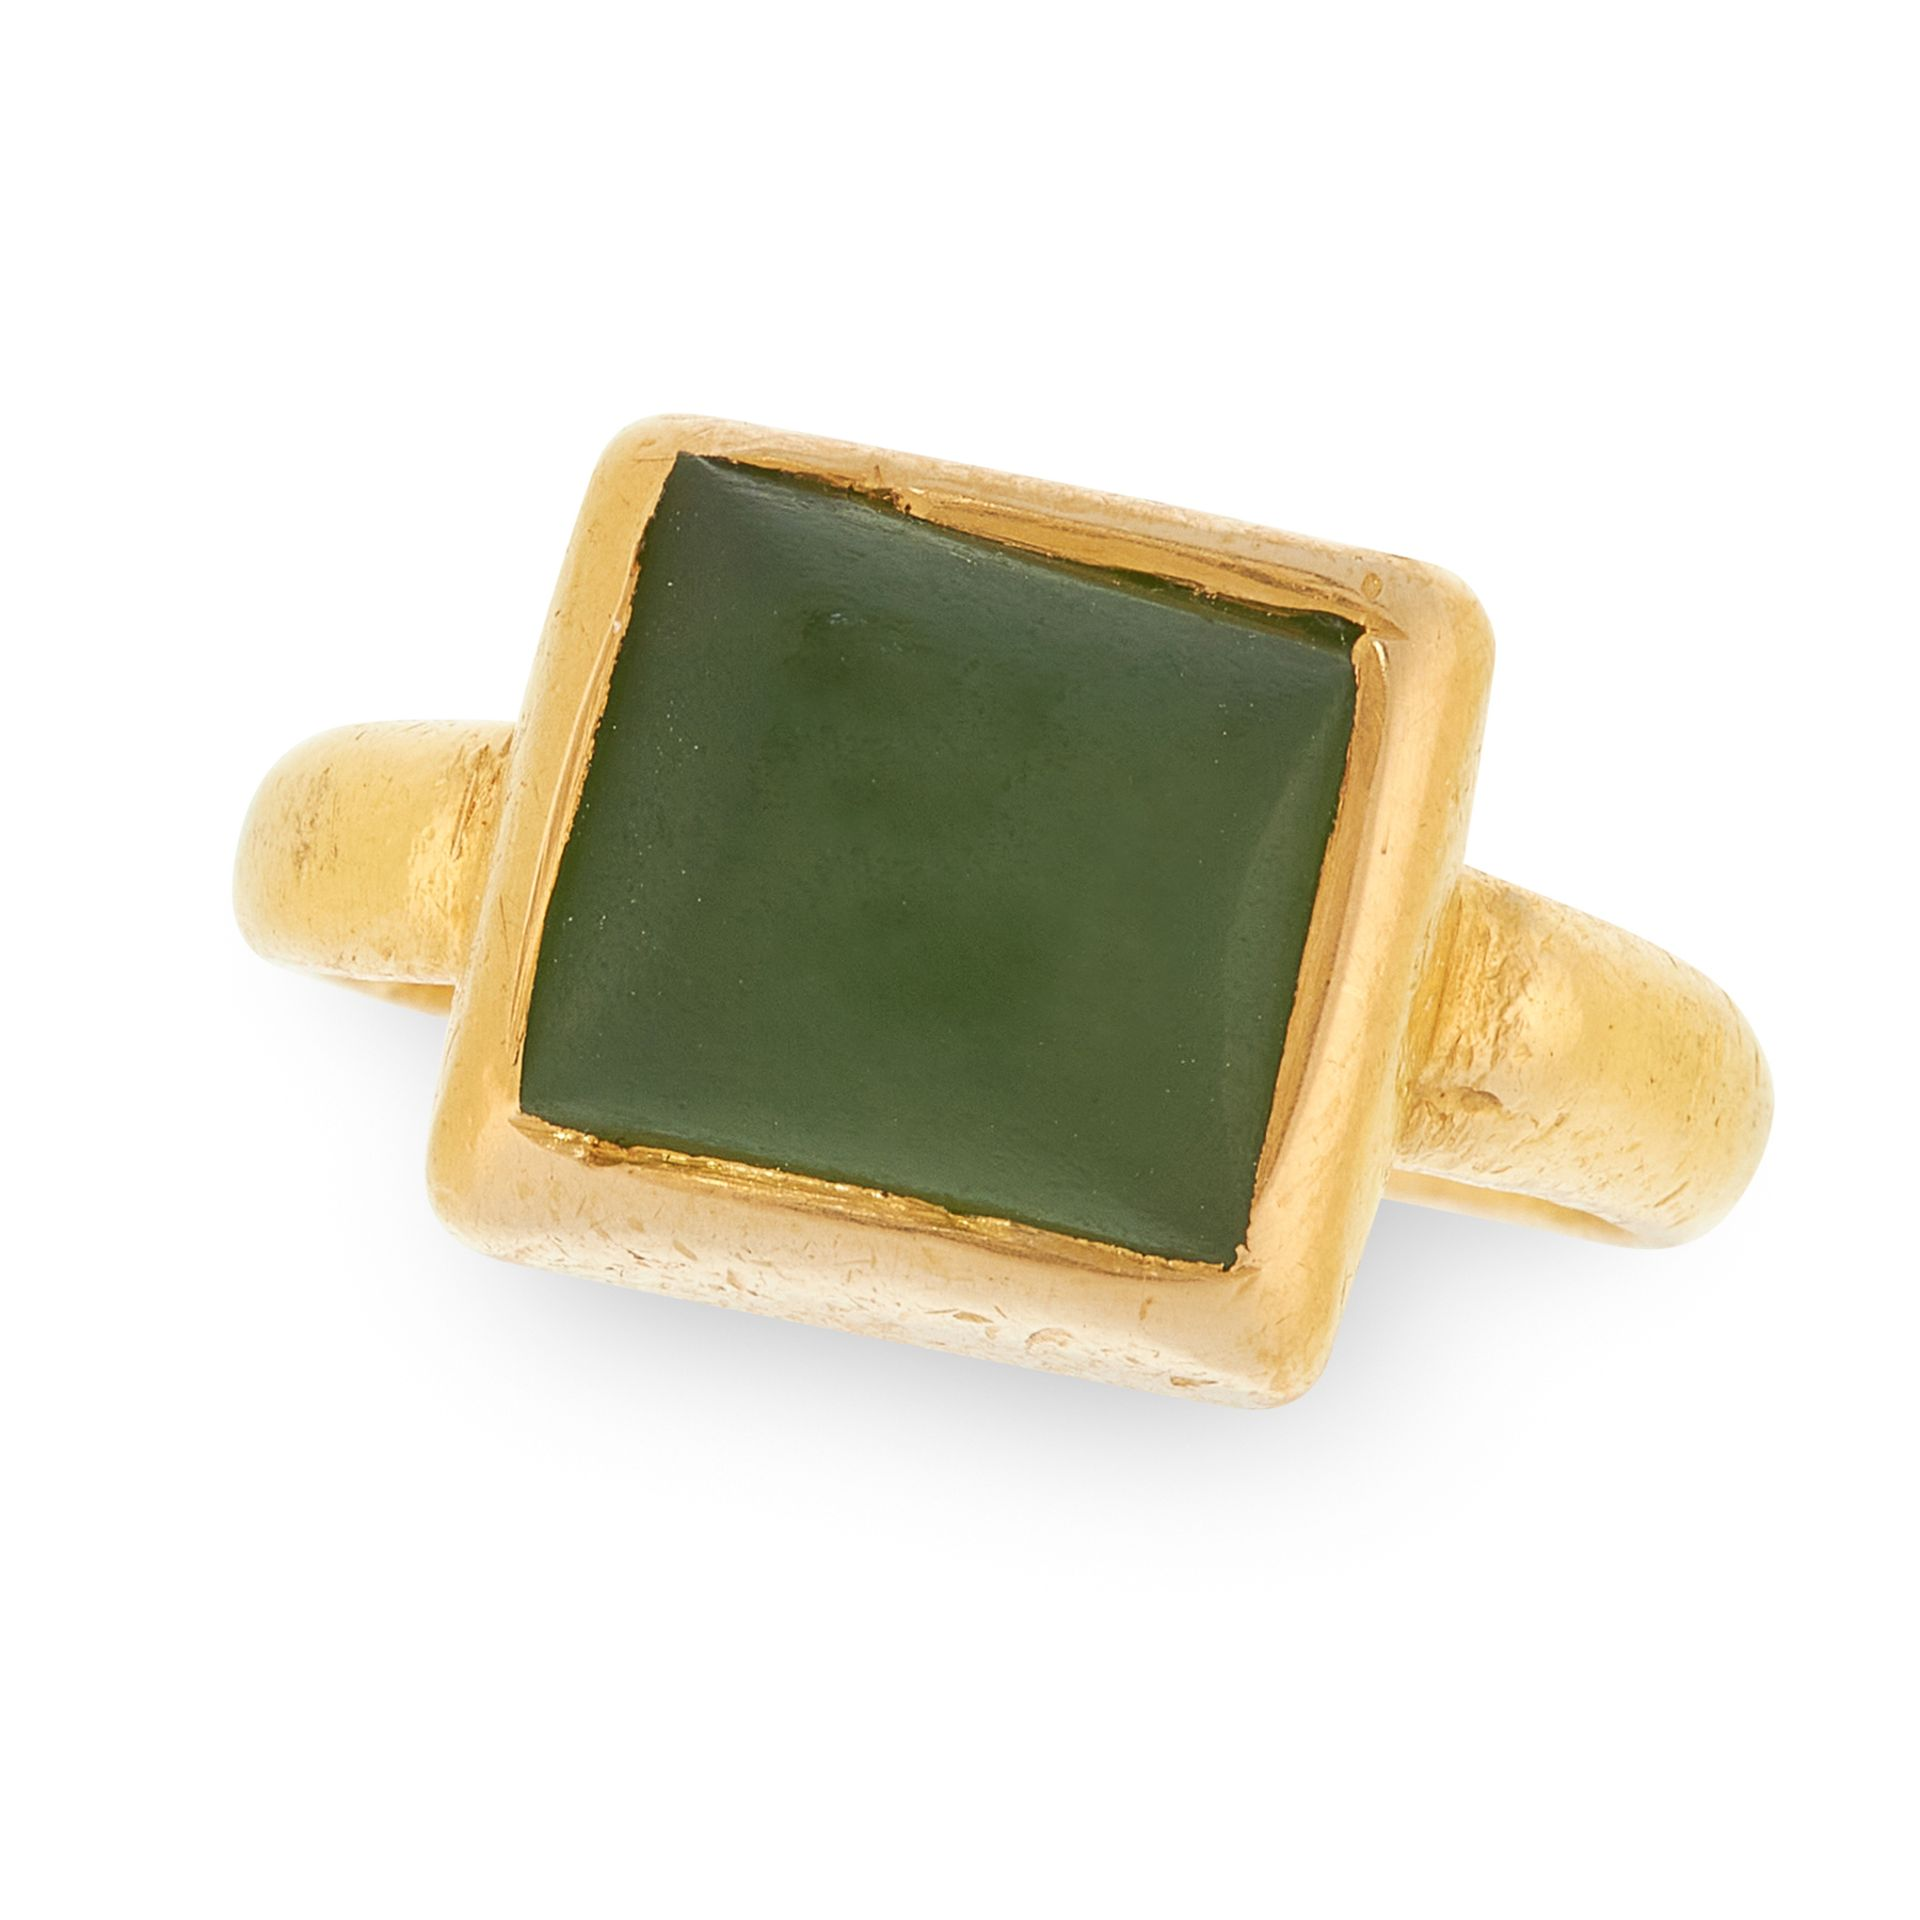 AN ANTIQUE GREEN GLASS OR HARDSTONE RING, 14TH - 15TH CENTURY OR LATER in high carat yellow gold,